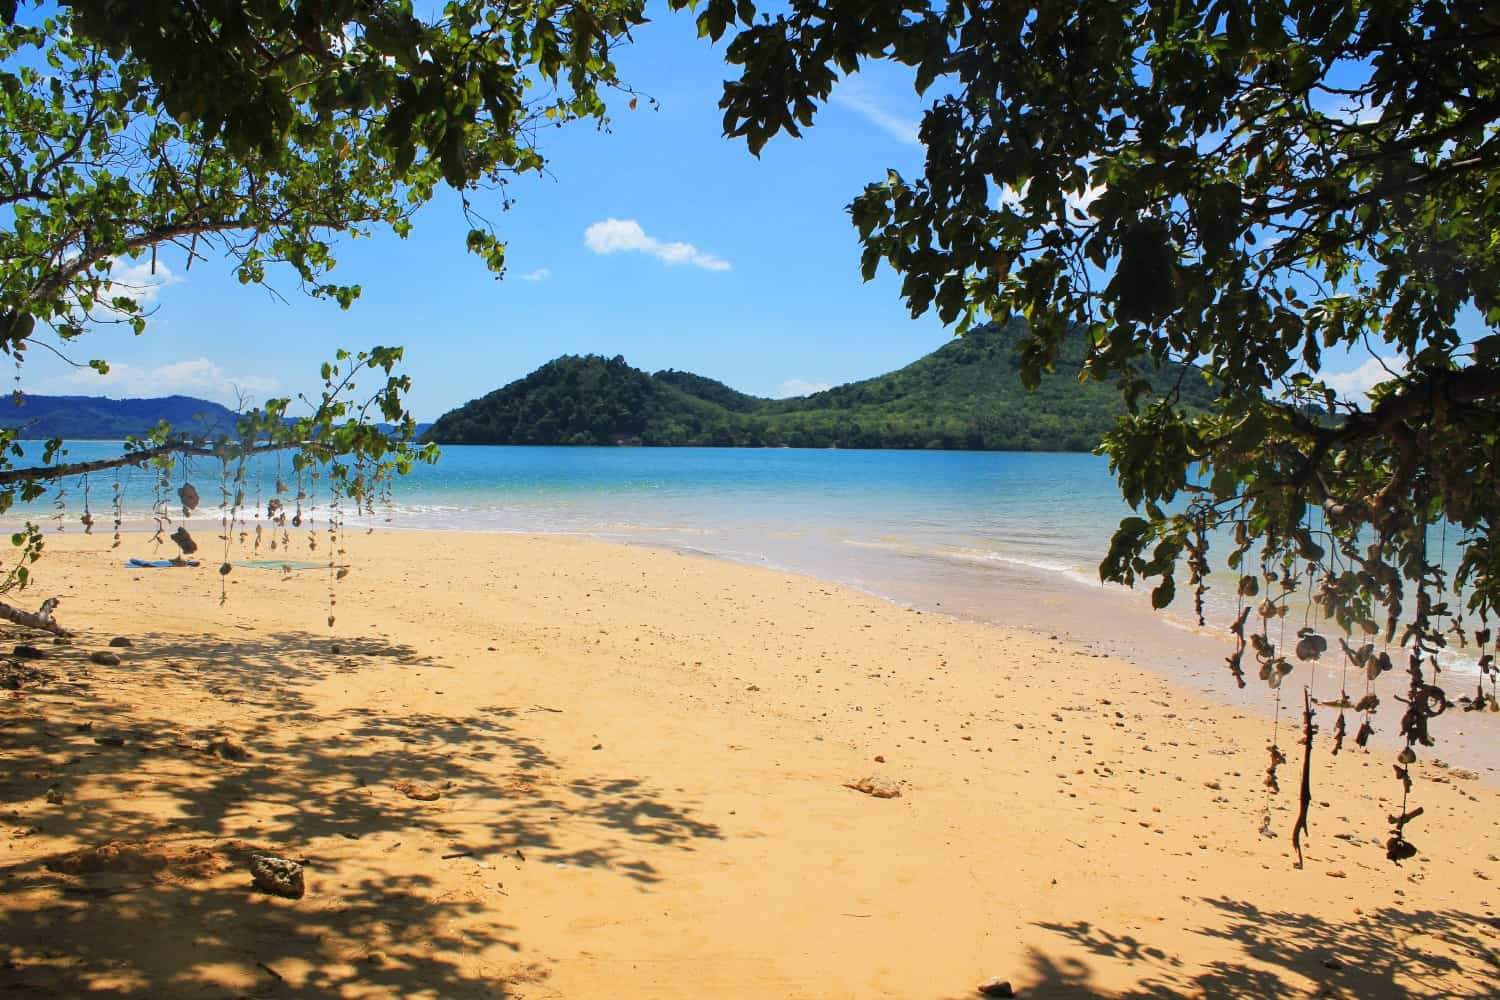 The beach on nearby Koh Nok